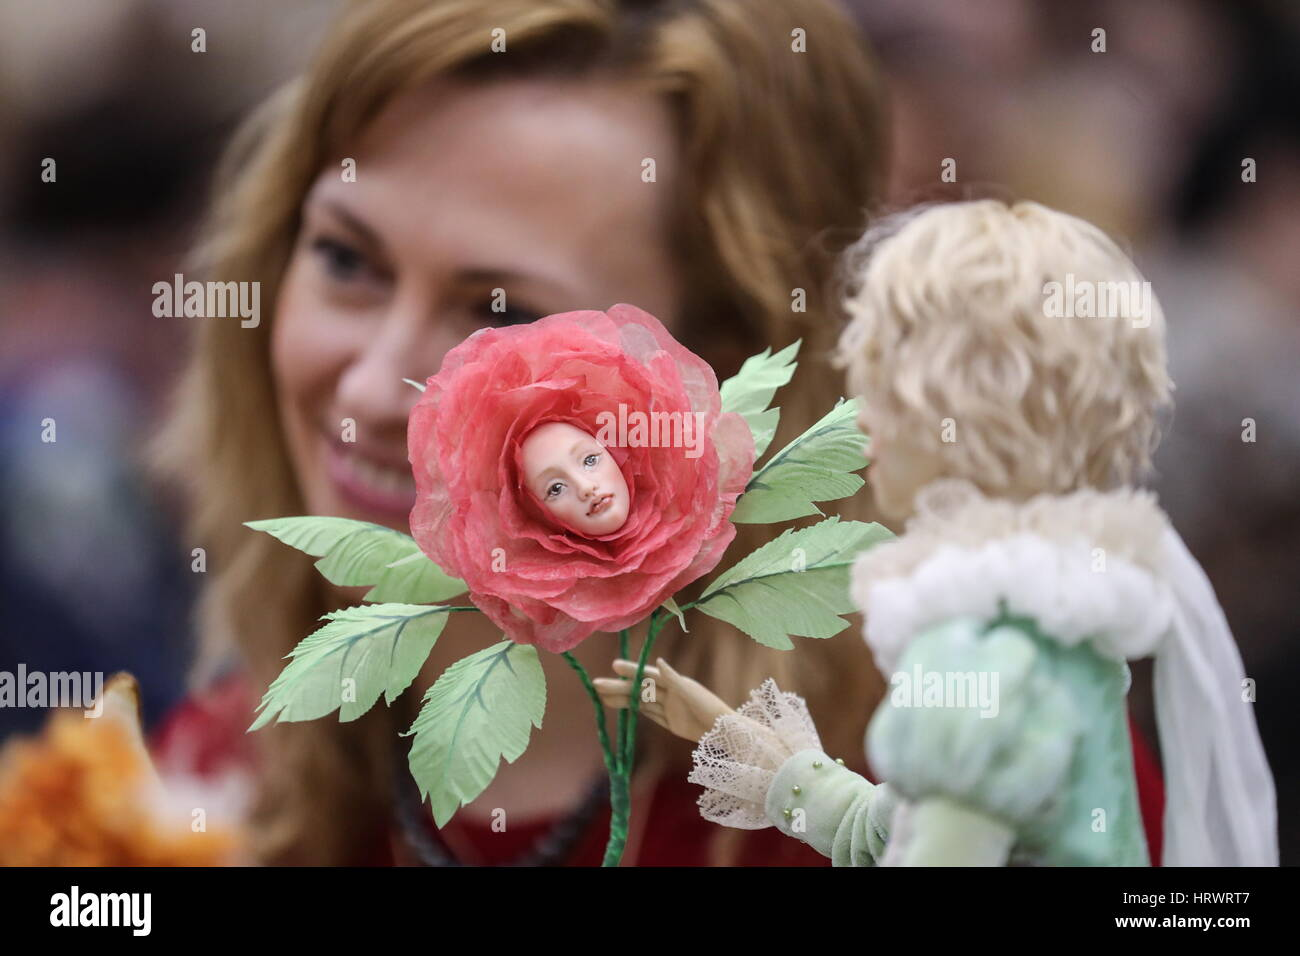 Moscow, Russia. 4th Mar, 2017. Showpieces on display at the 5th international designer dolls exhibition at the T - Stock Image